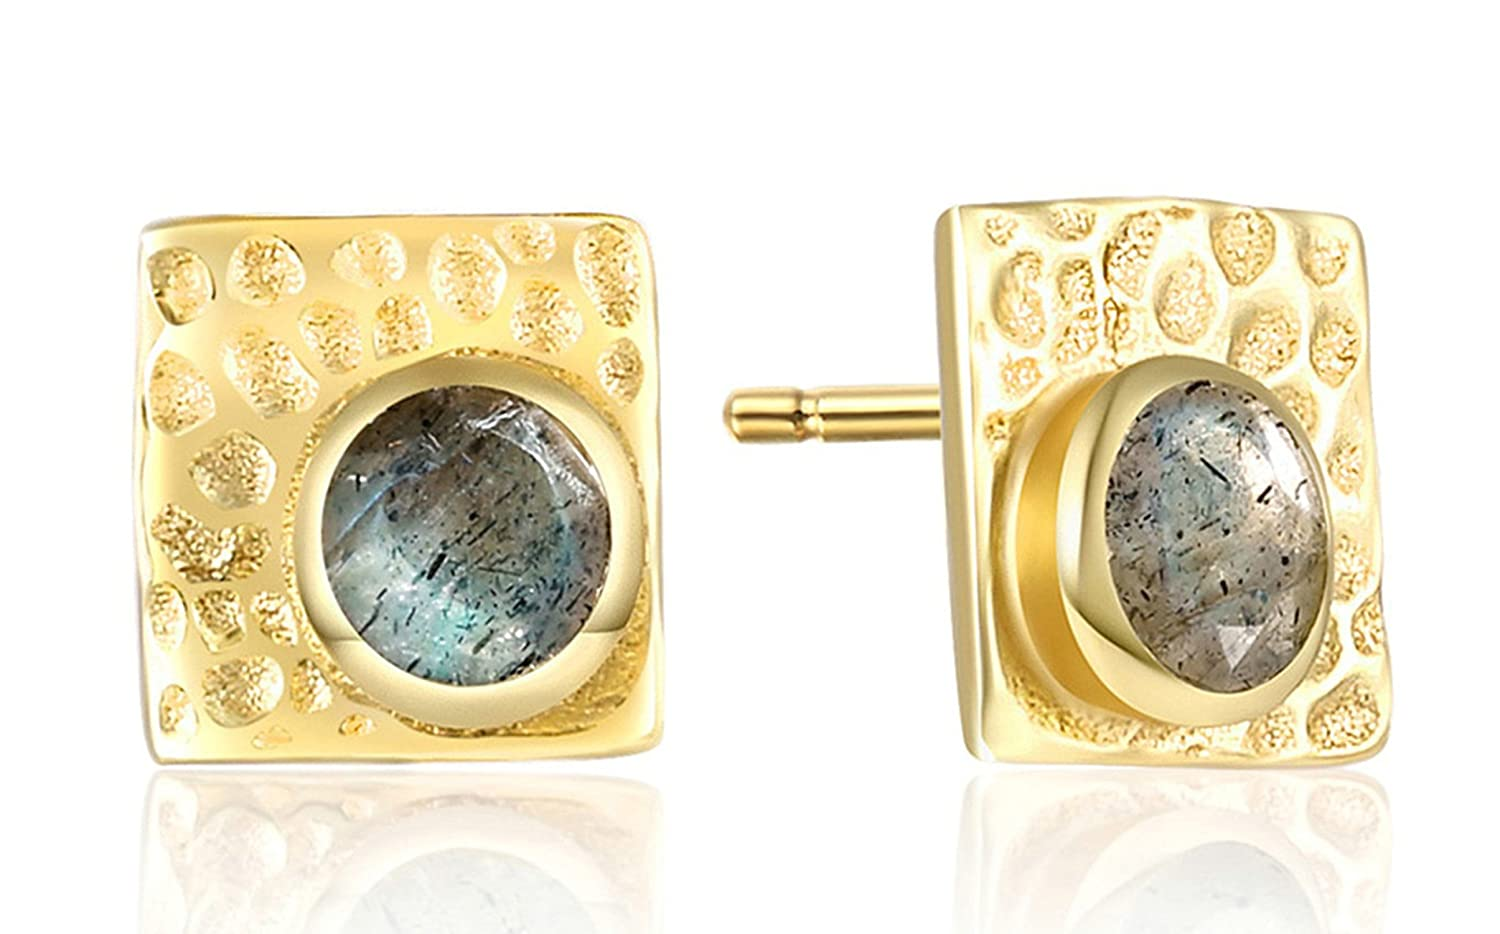 Gnzoe 925 Sterling Silver Stud Earrings for Women Square Design with Shiny Stone Gold Earring